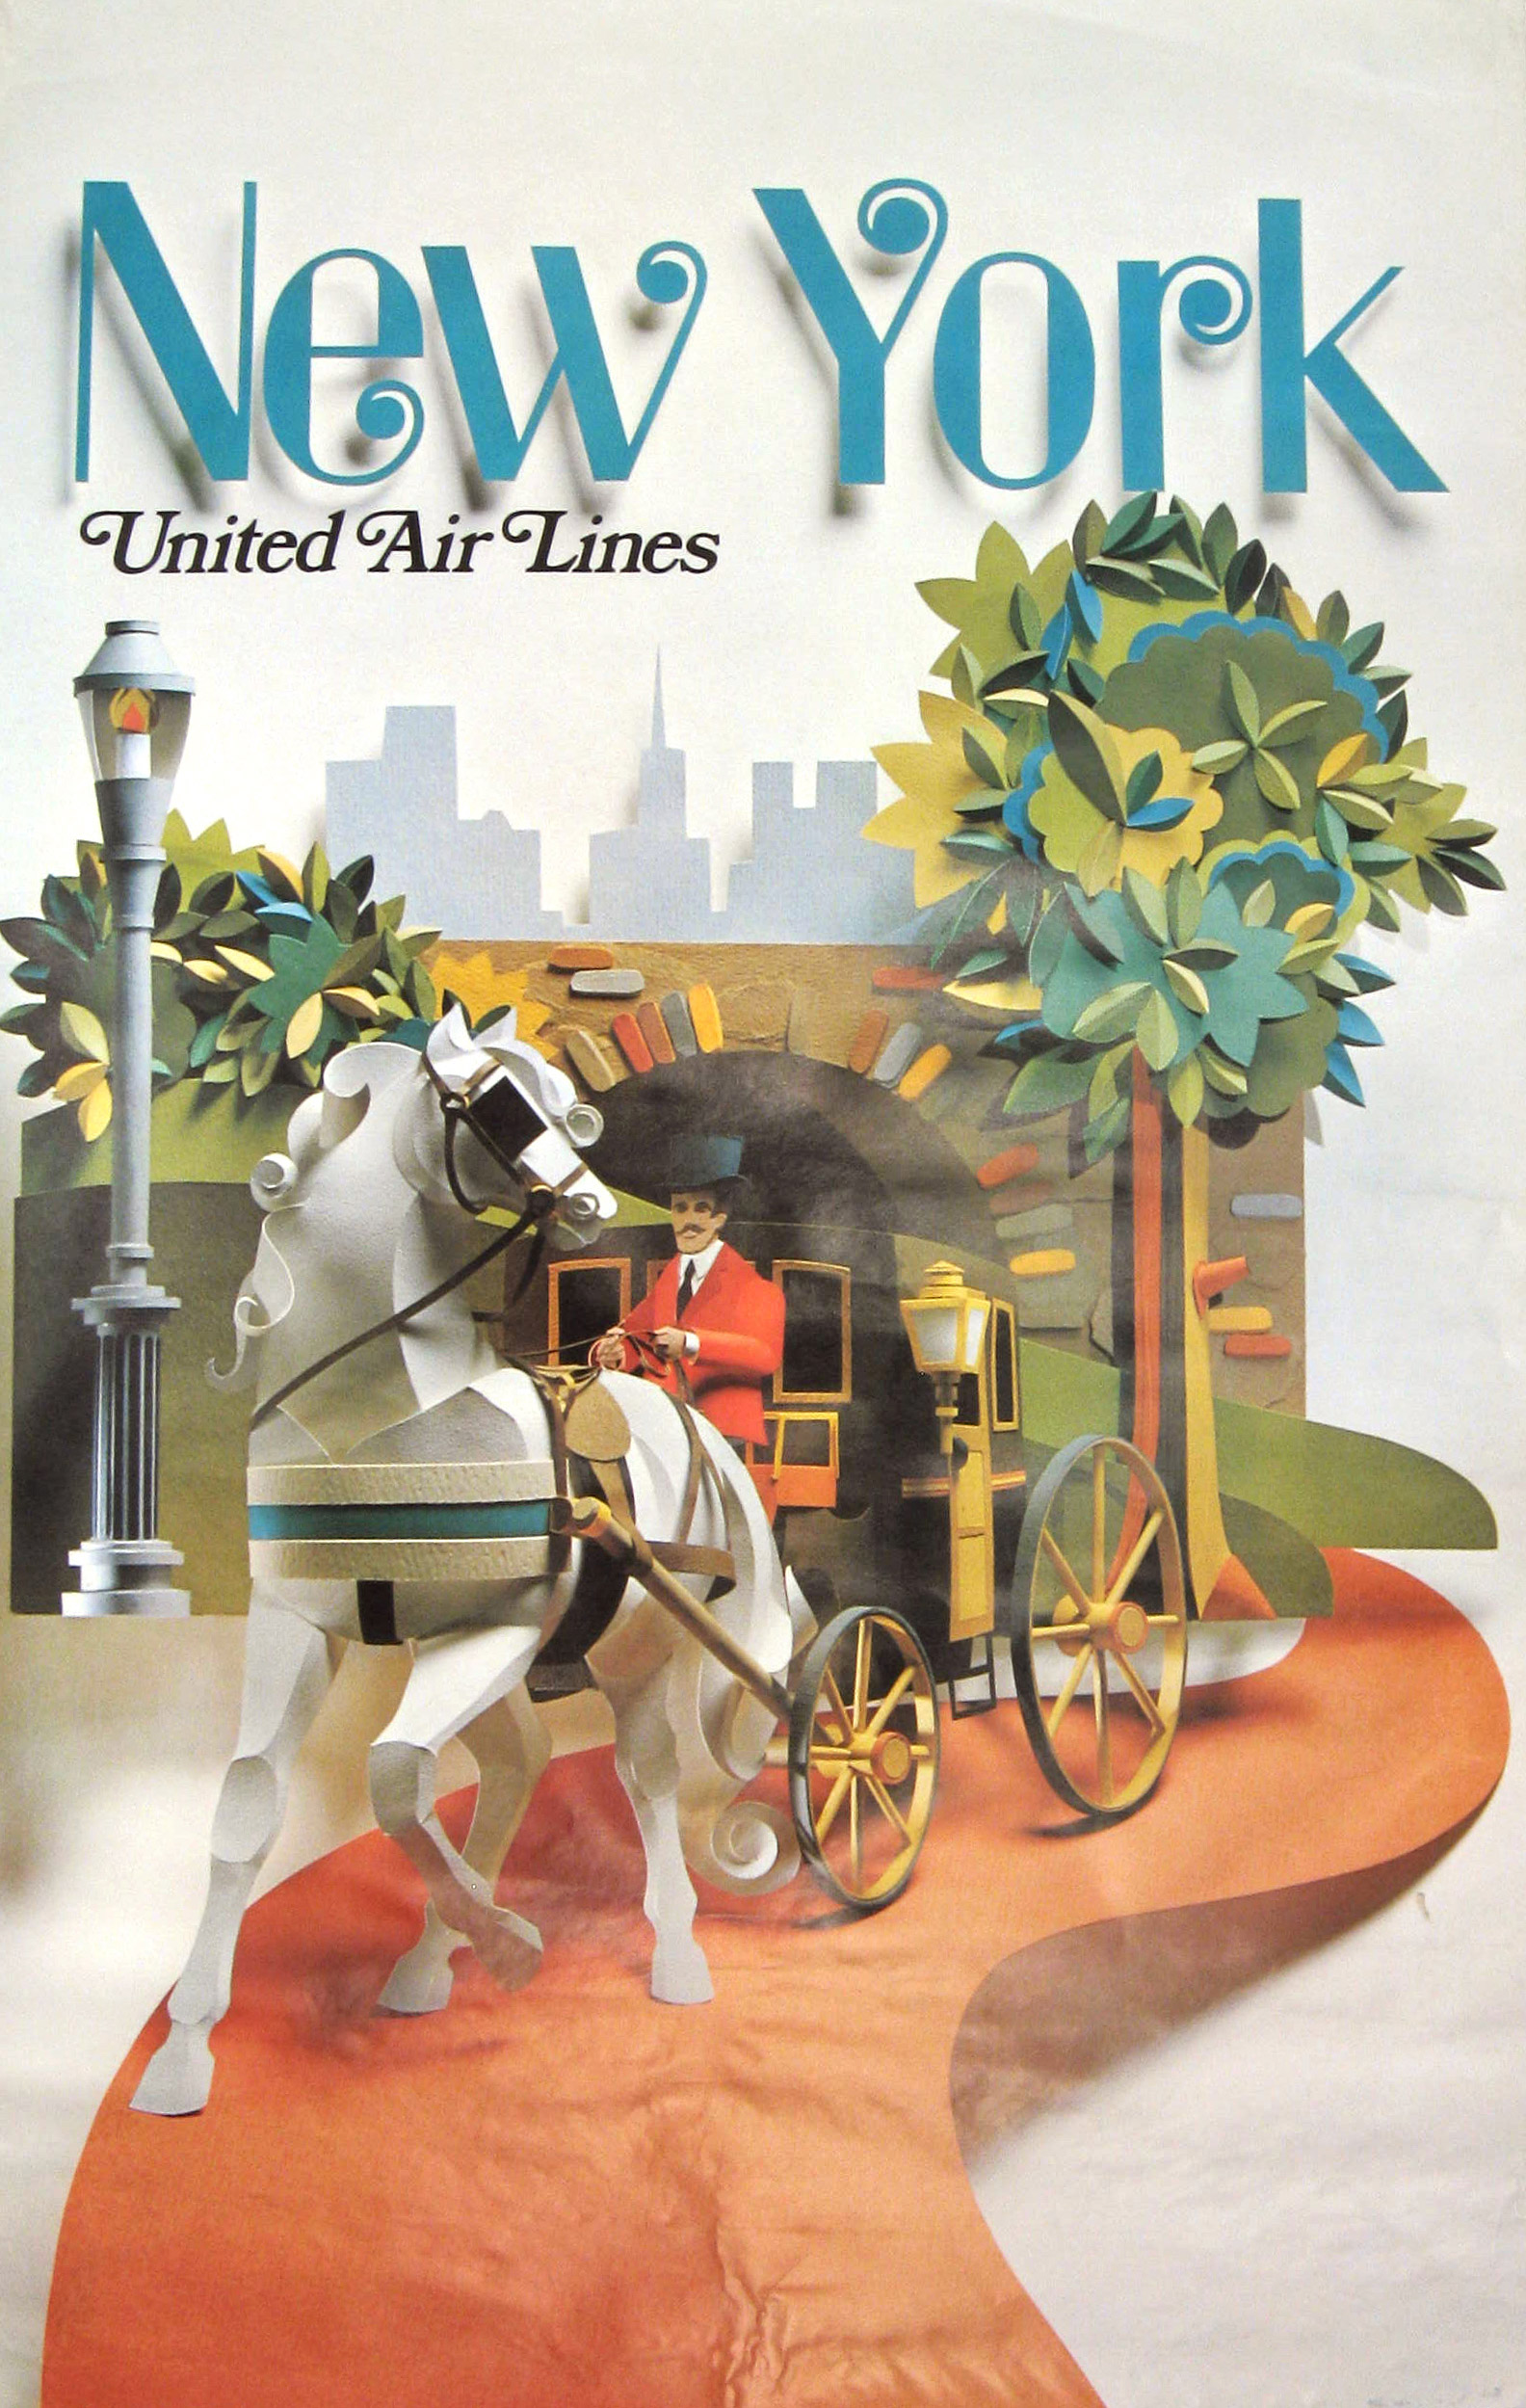 United Air Lines New York 1971.